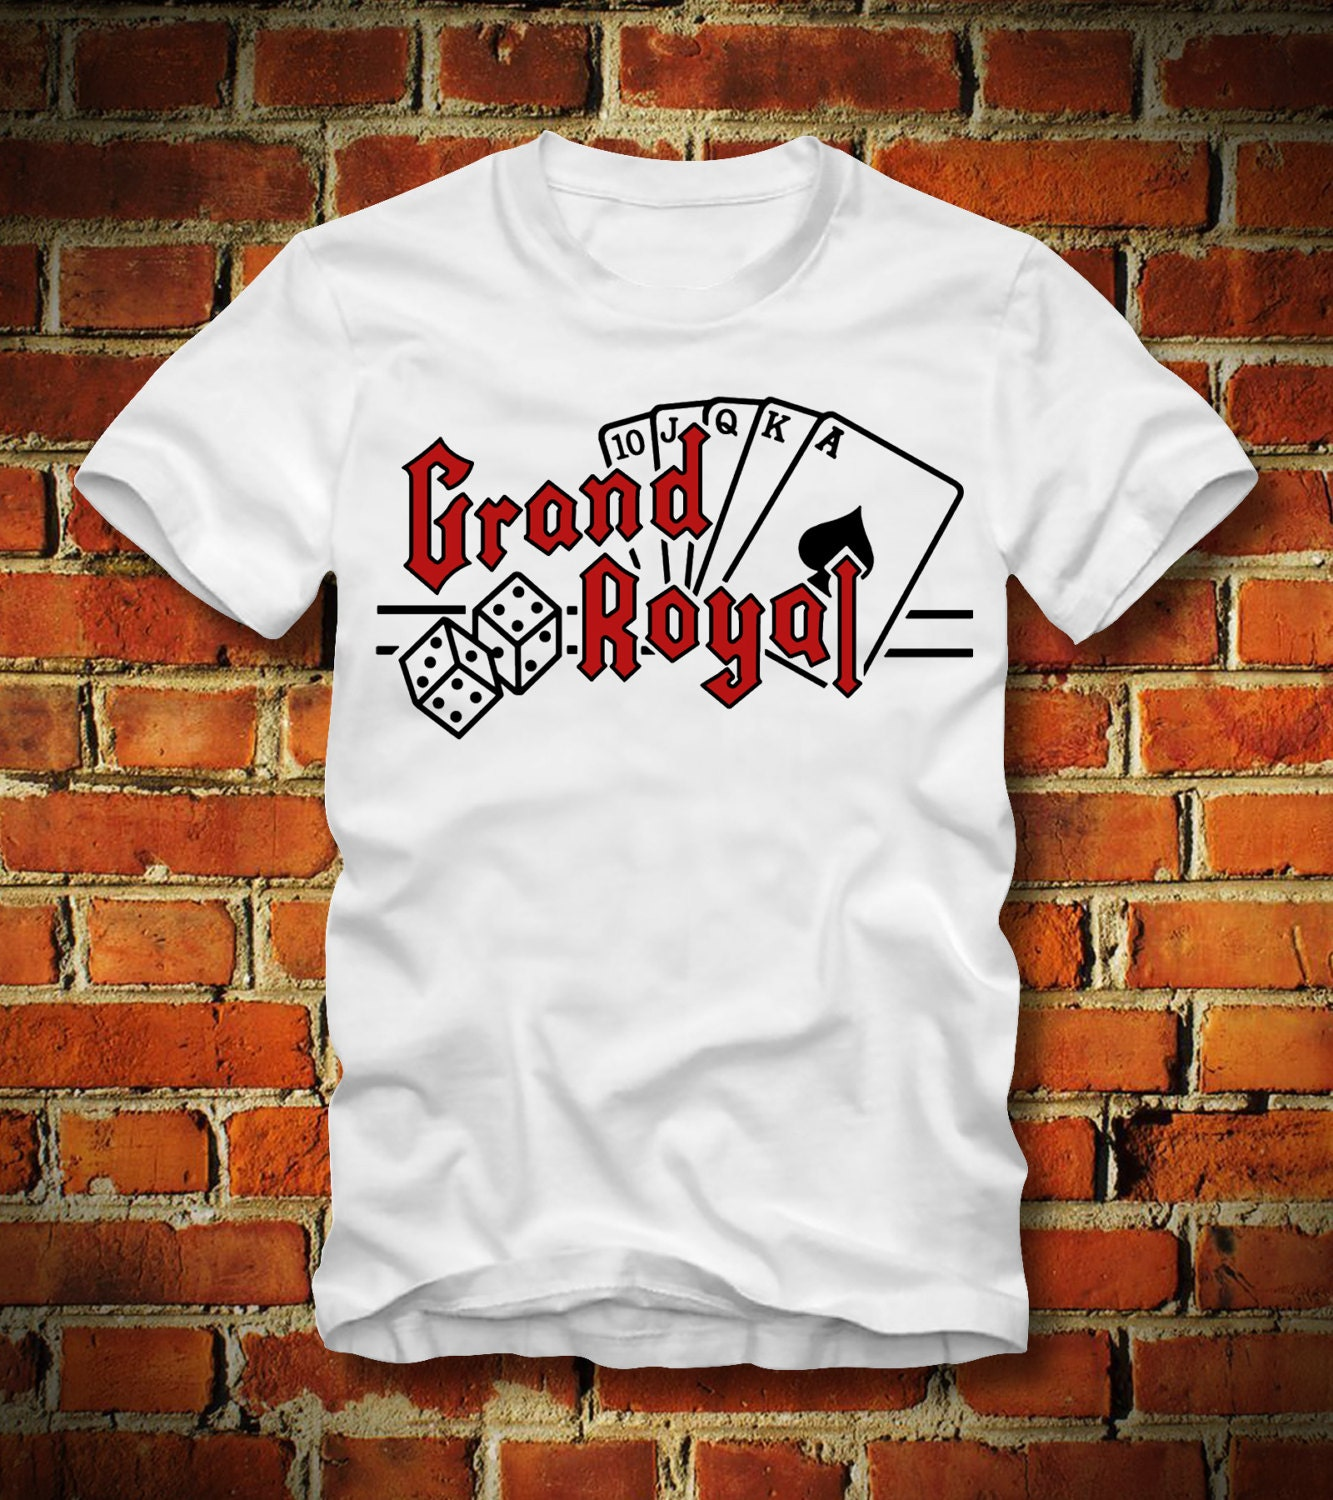 Boardrippaz grand royal t shirt record company beastie boys t for T shirt printing in palmdale ca